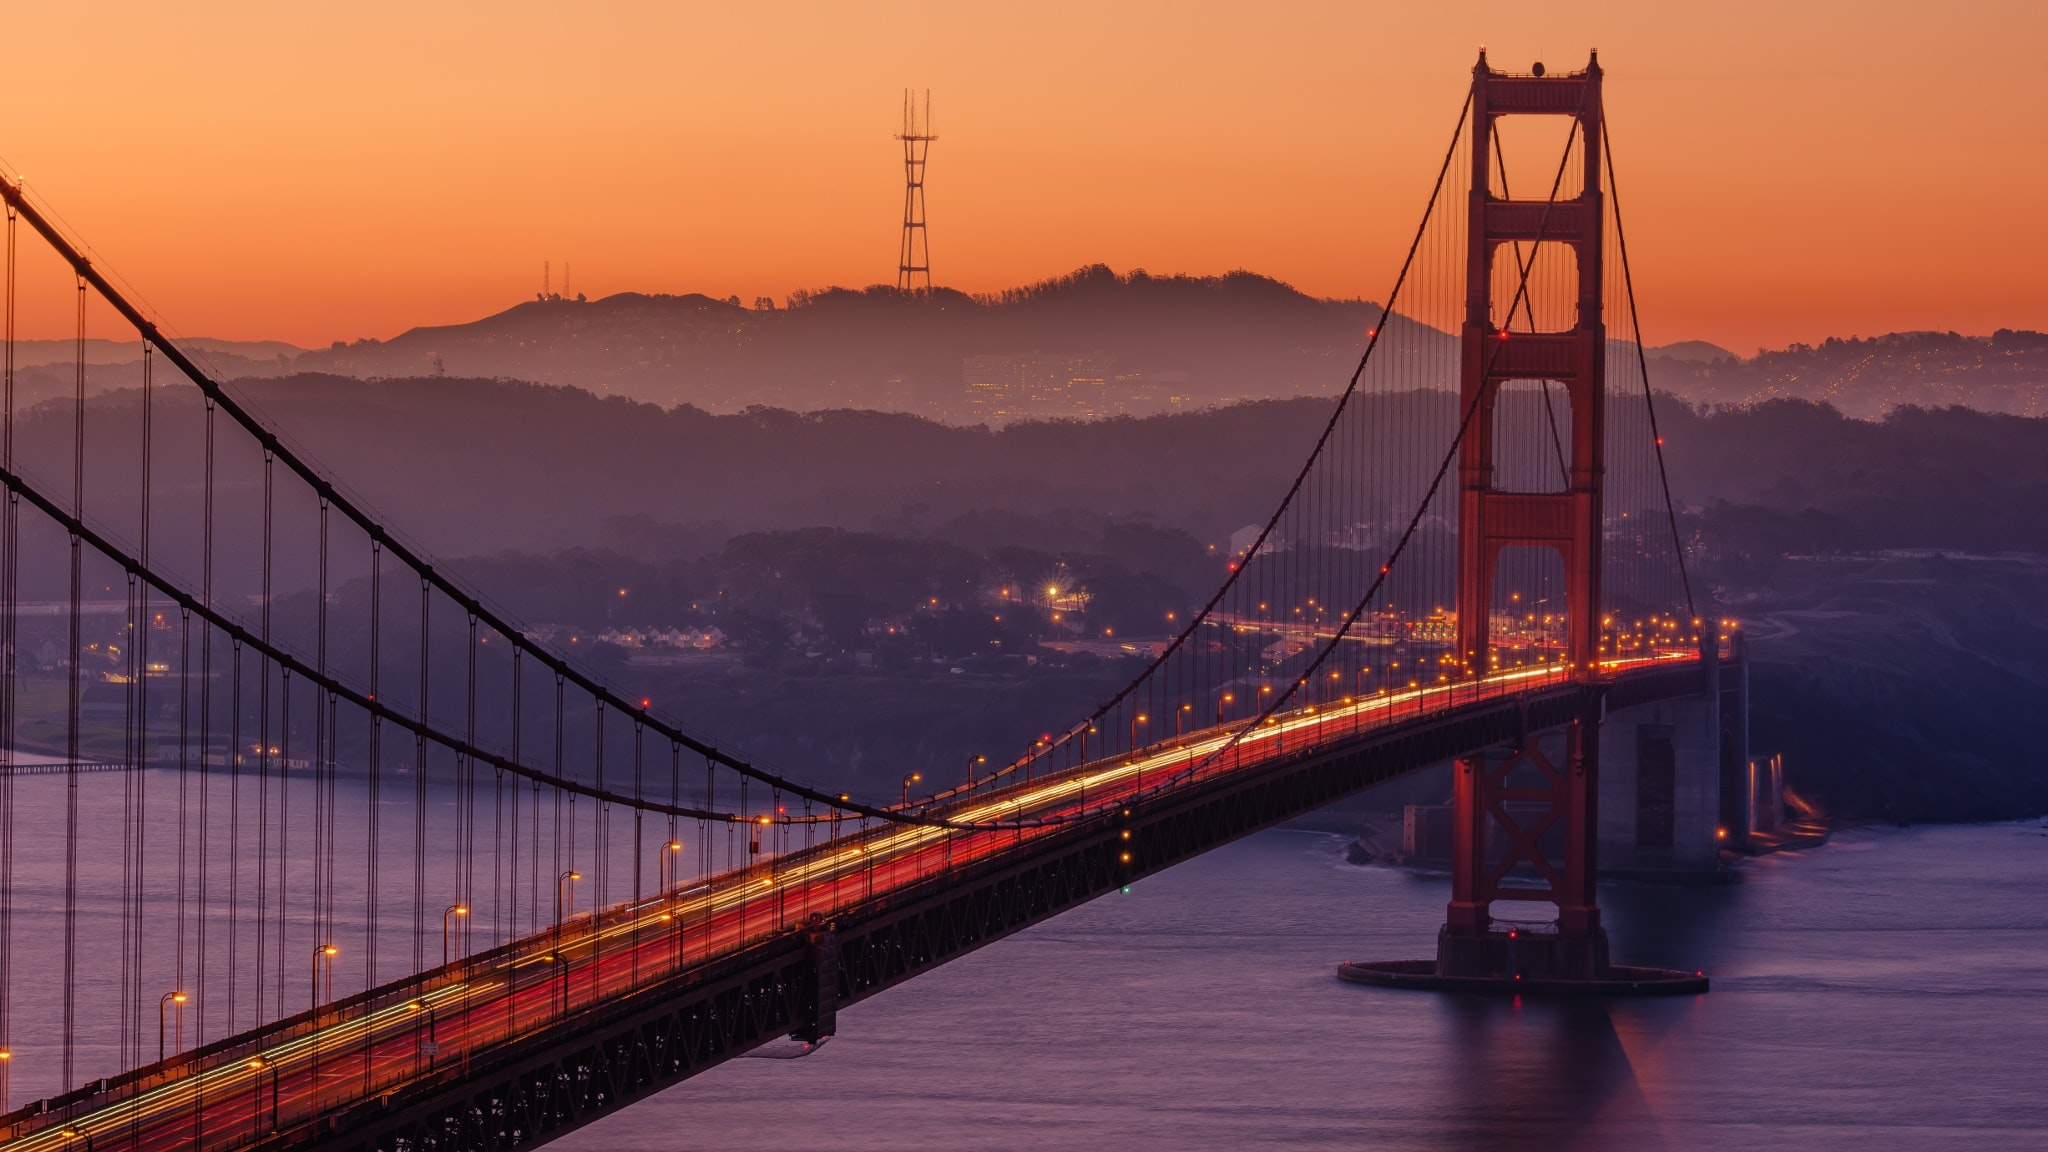 500+ Golden Gate Pictures [HD